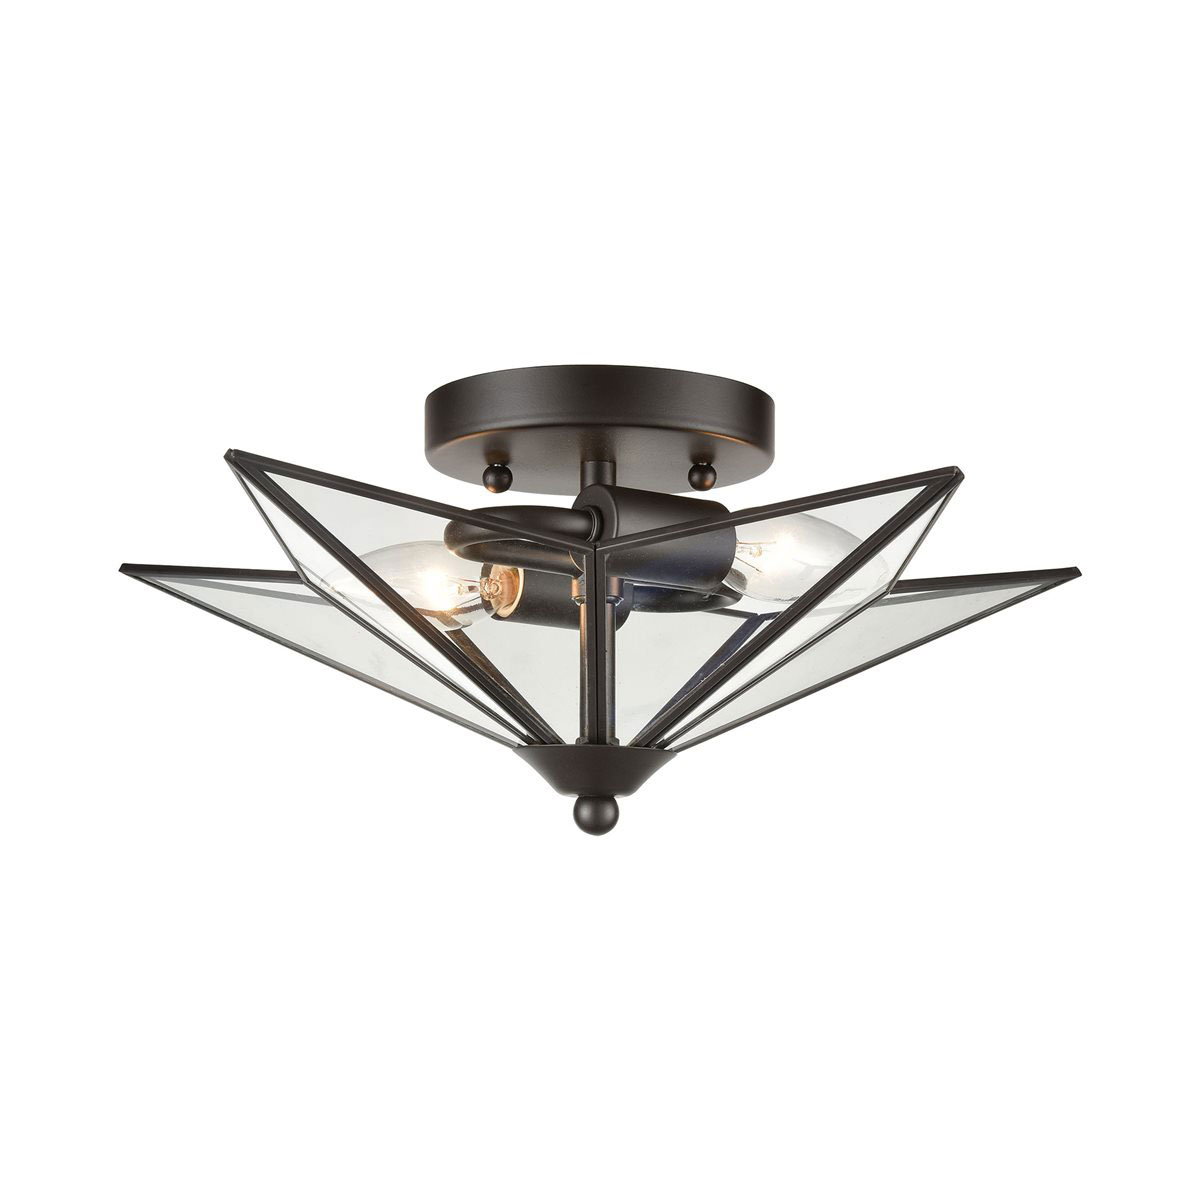 Moravian Star Ceiling Light Fixture By